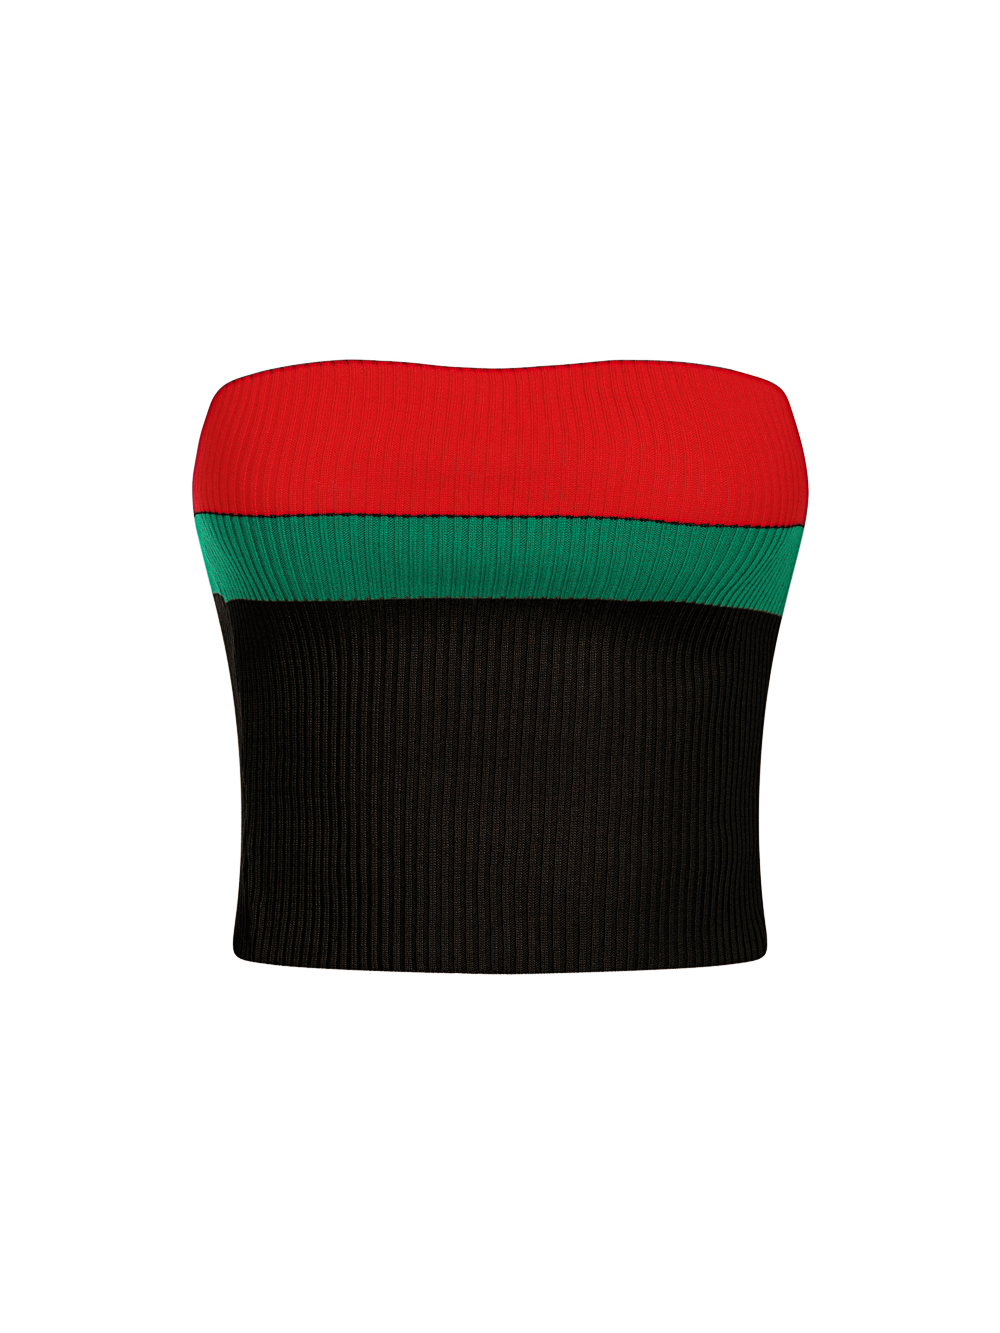 Zara Black Red and Green Striped Fine Knit 3 Piece Lounge Co-ord Set Nazz Collection